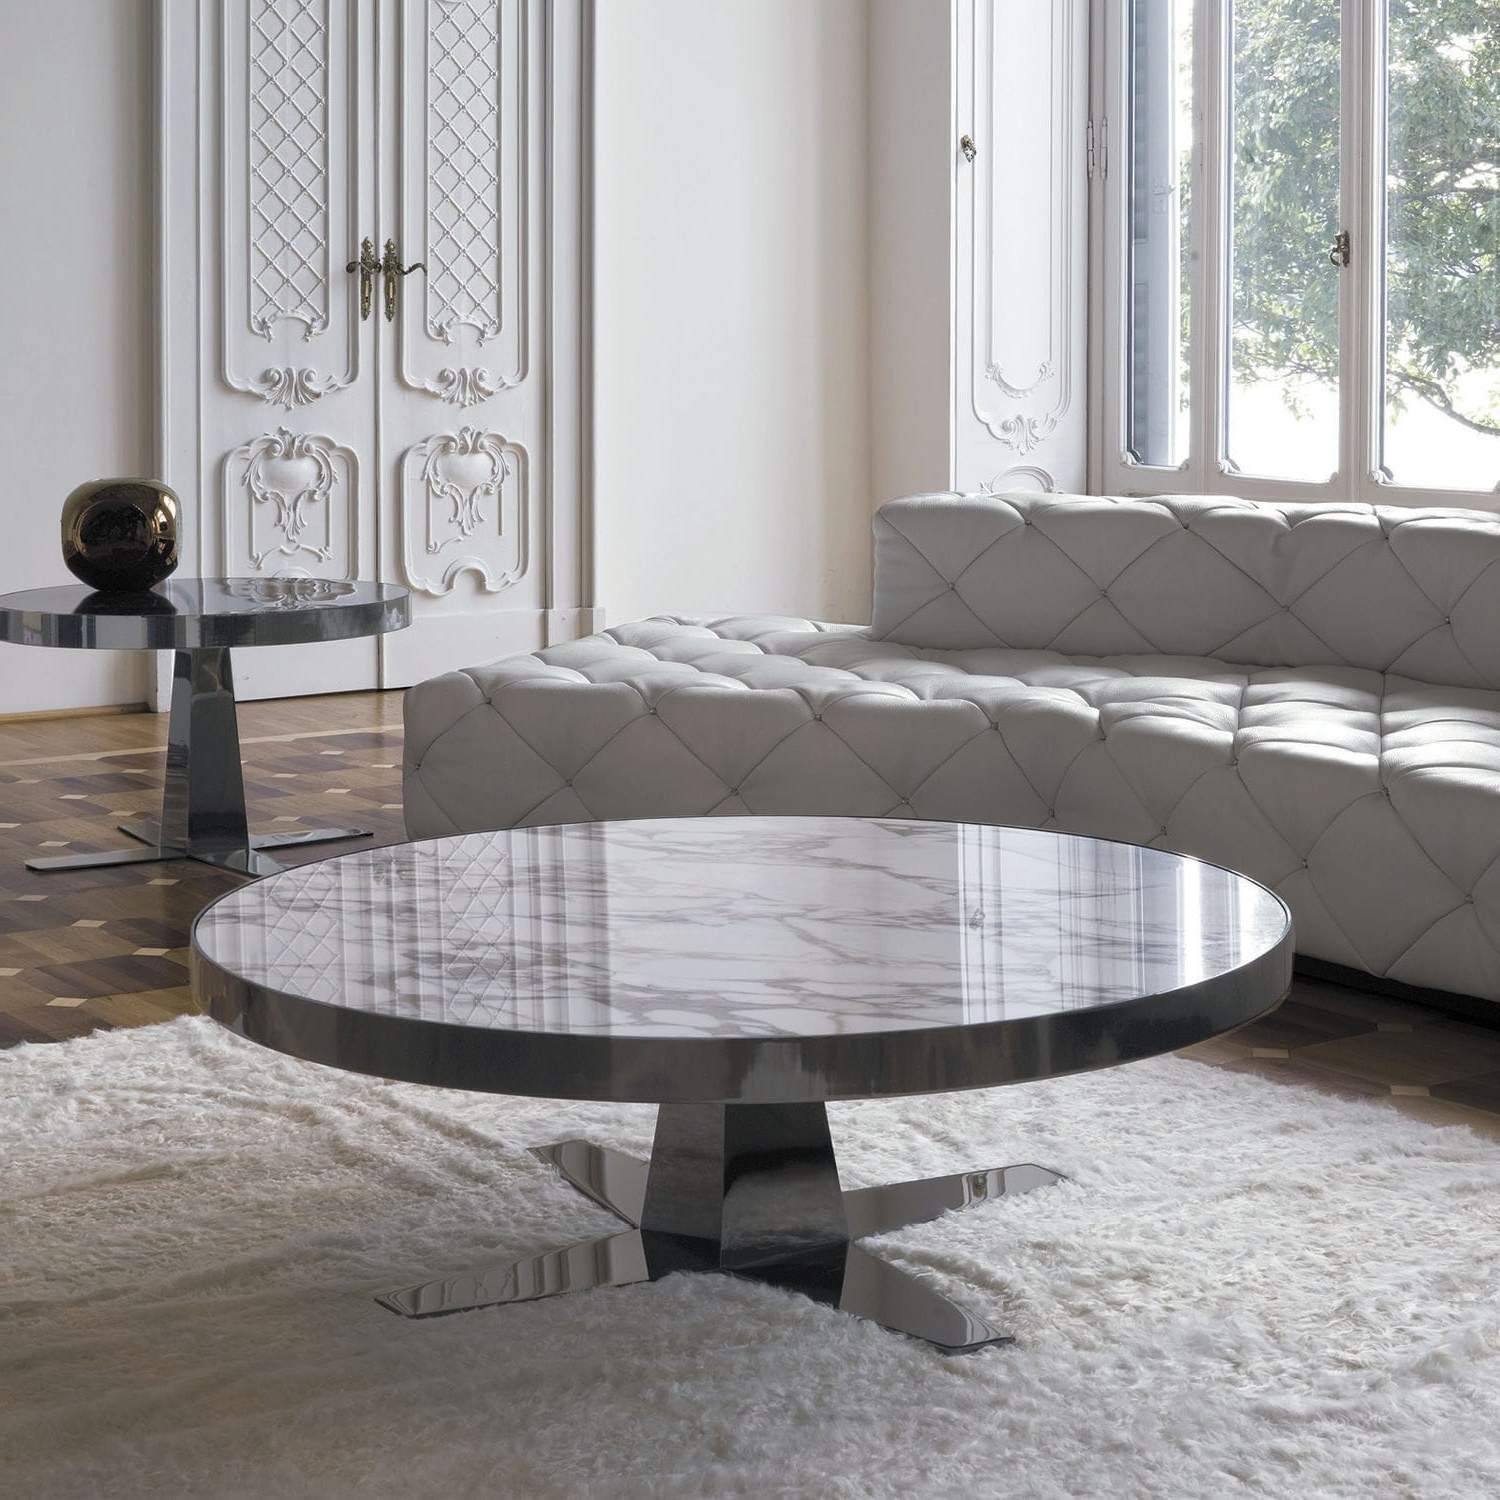 Smart Round Marble Top Coffee Tables Inside Most Up To Date Coffee Table: Smart Round Marble Coffee Table At Your Room Ideas (View 16 of 20)